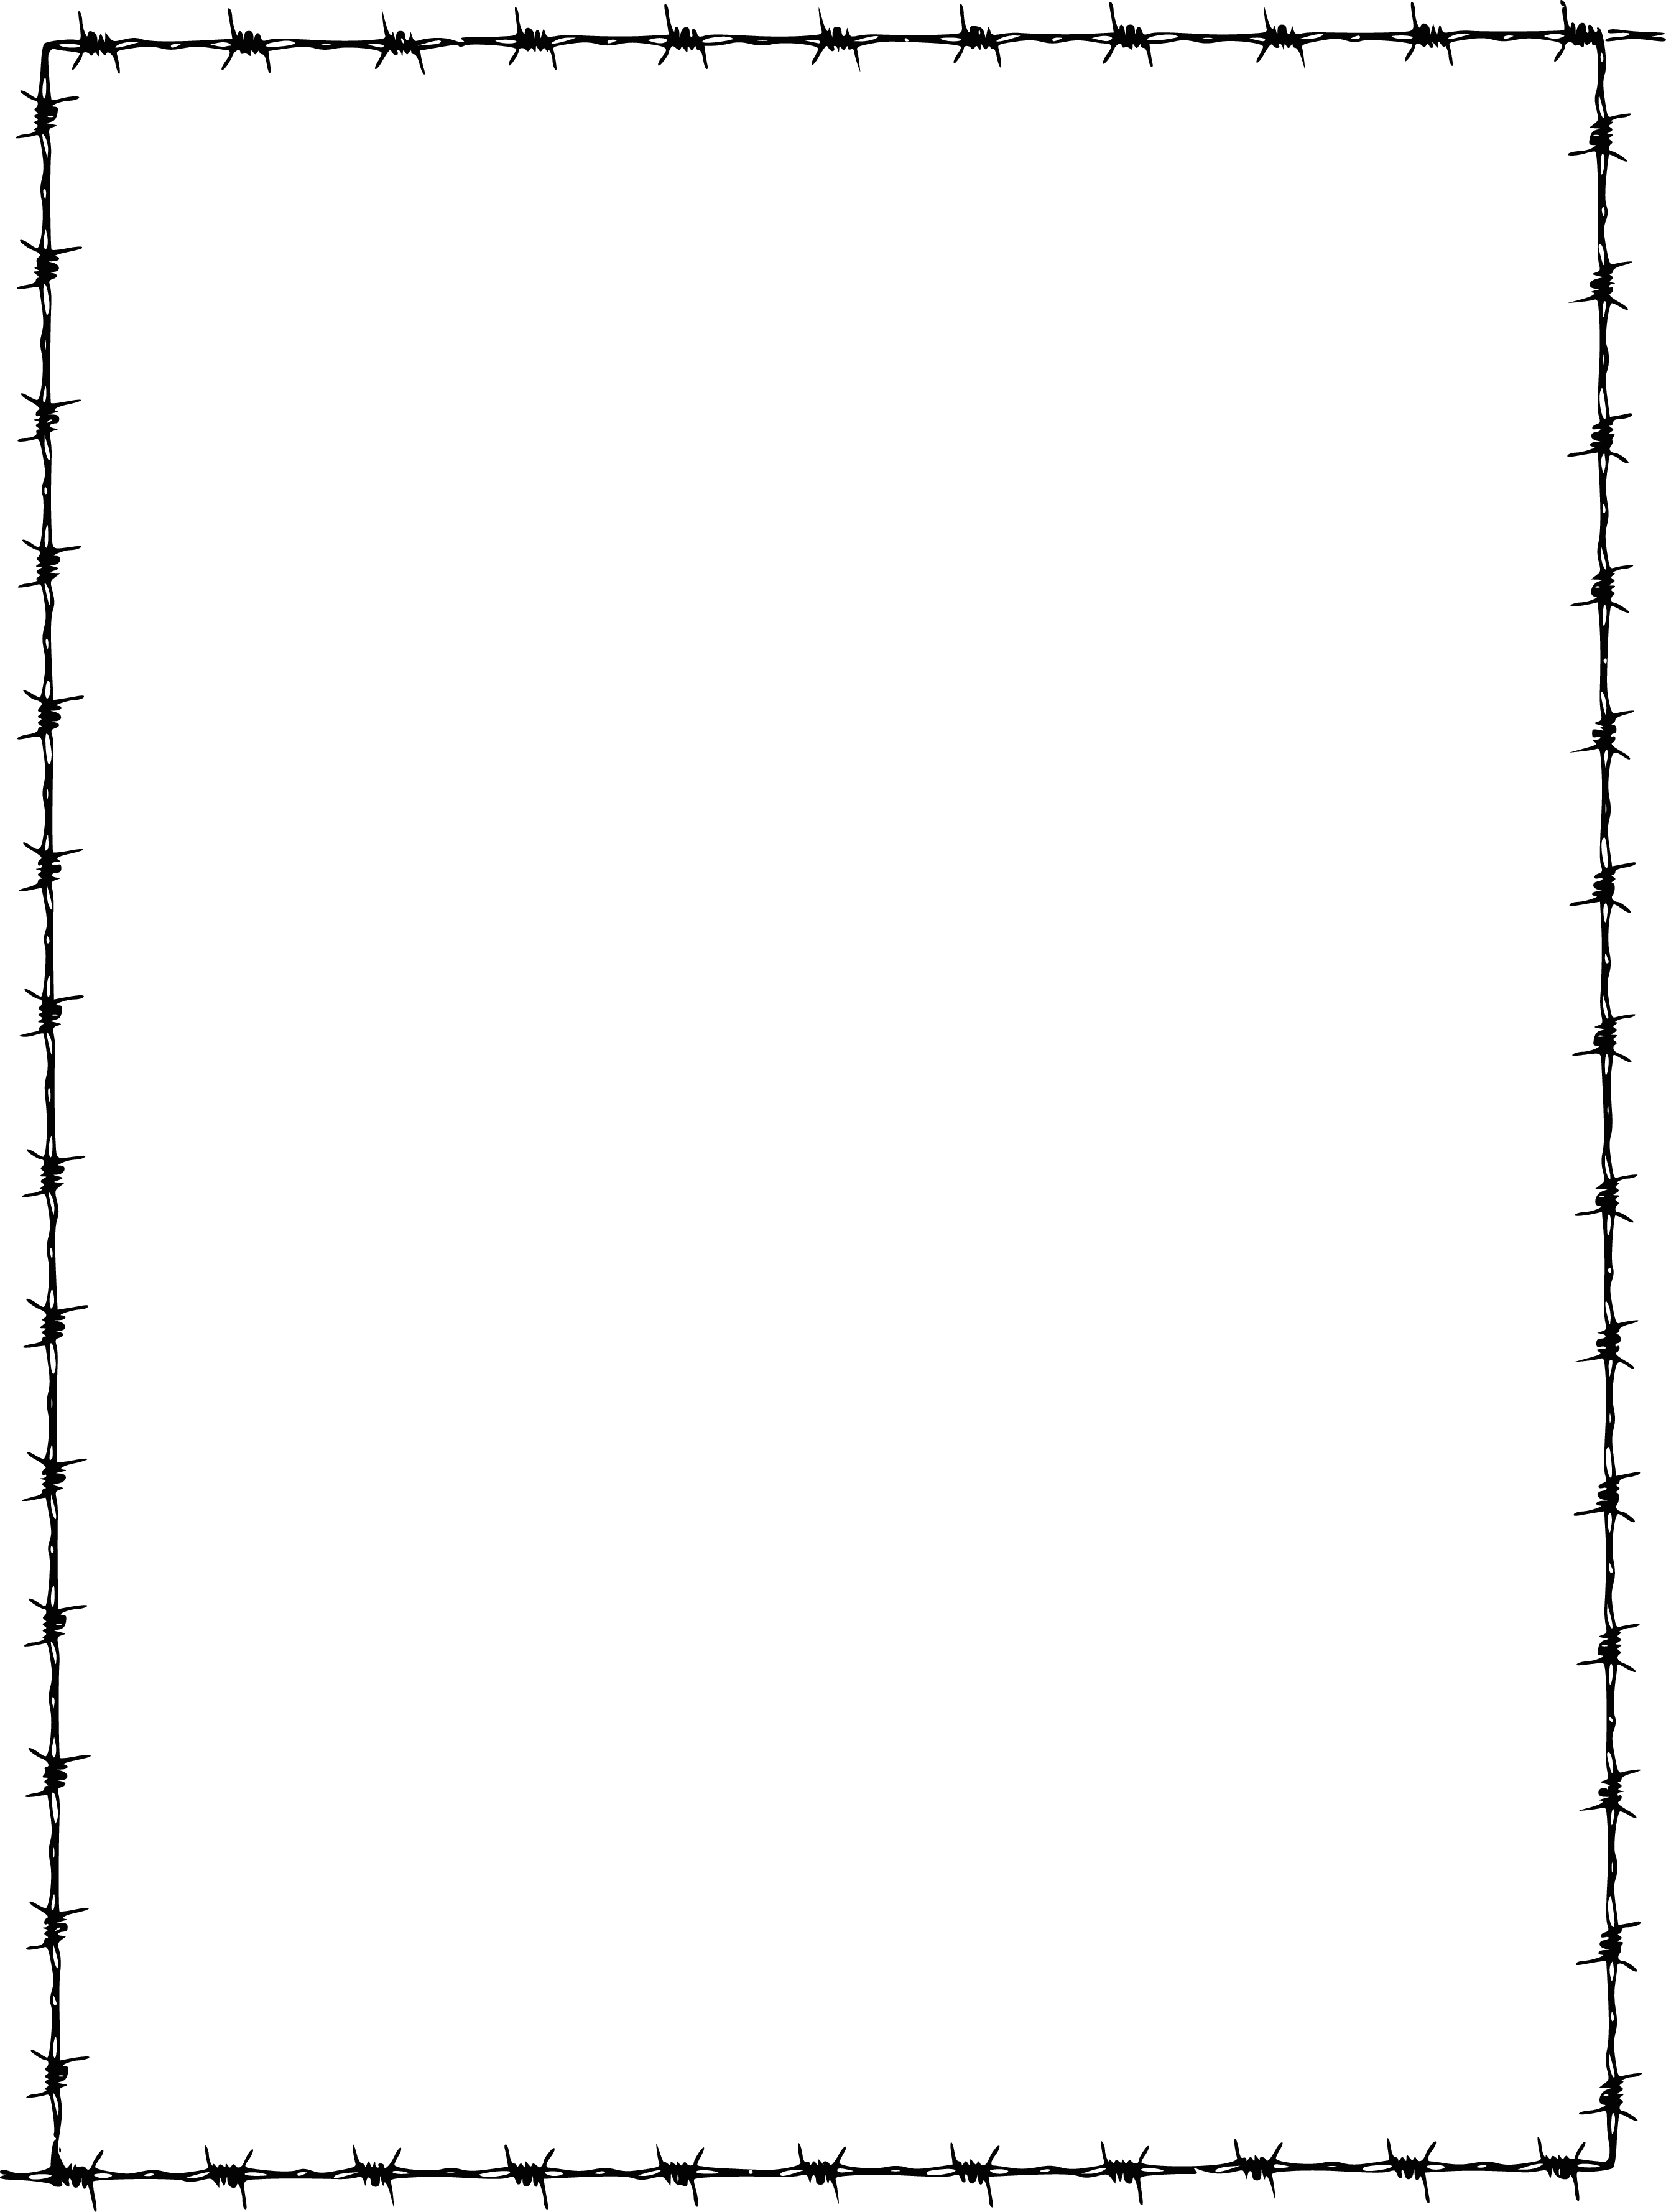 Barbed Wire Border Clipart